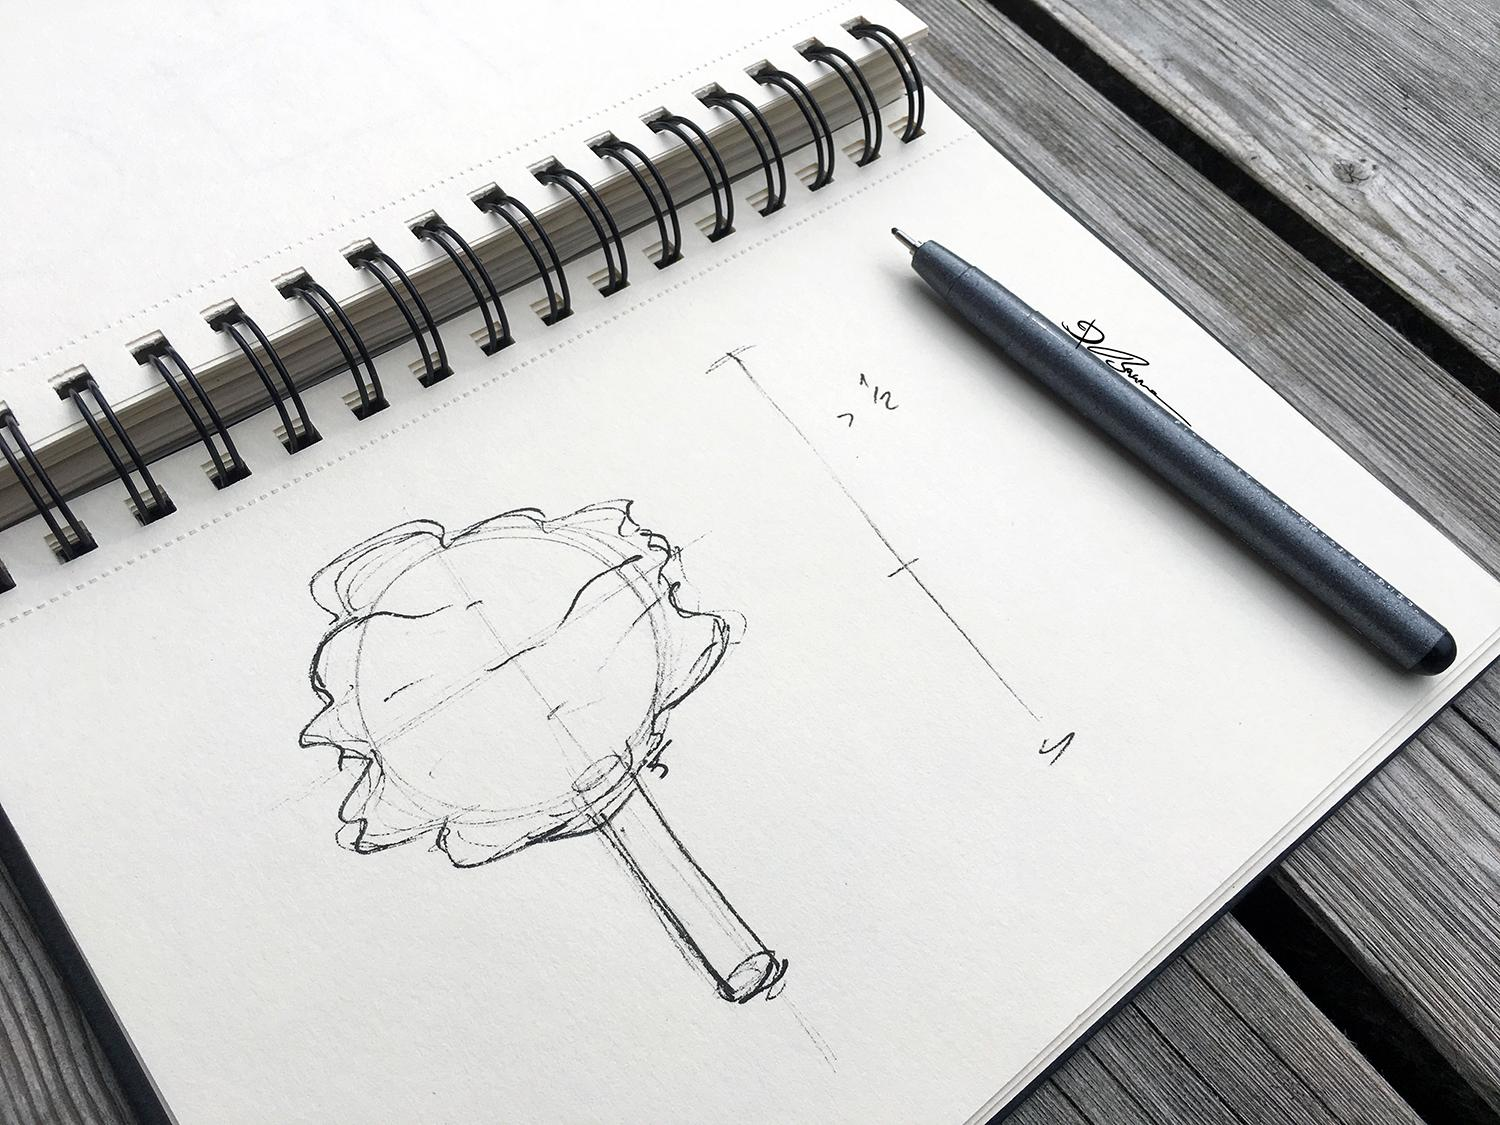 SKETCHING - learning to draw by sketching 3 minutes a day